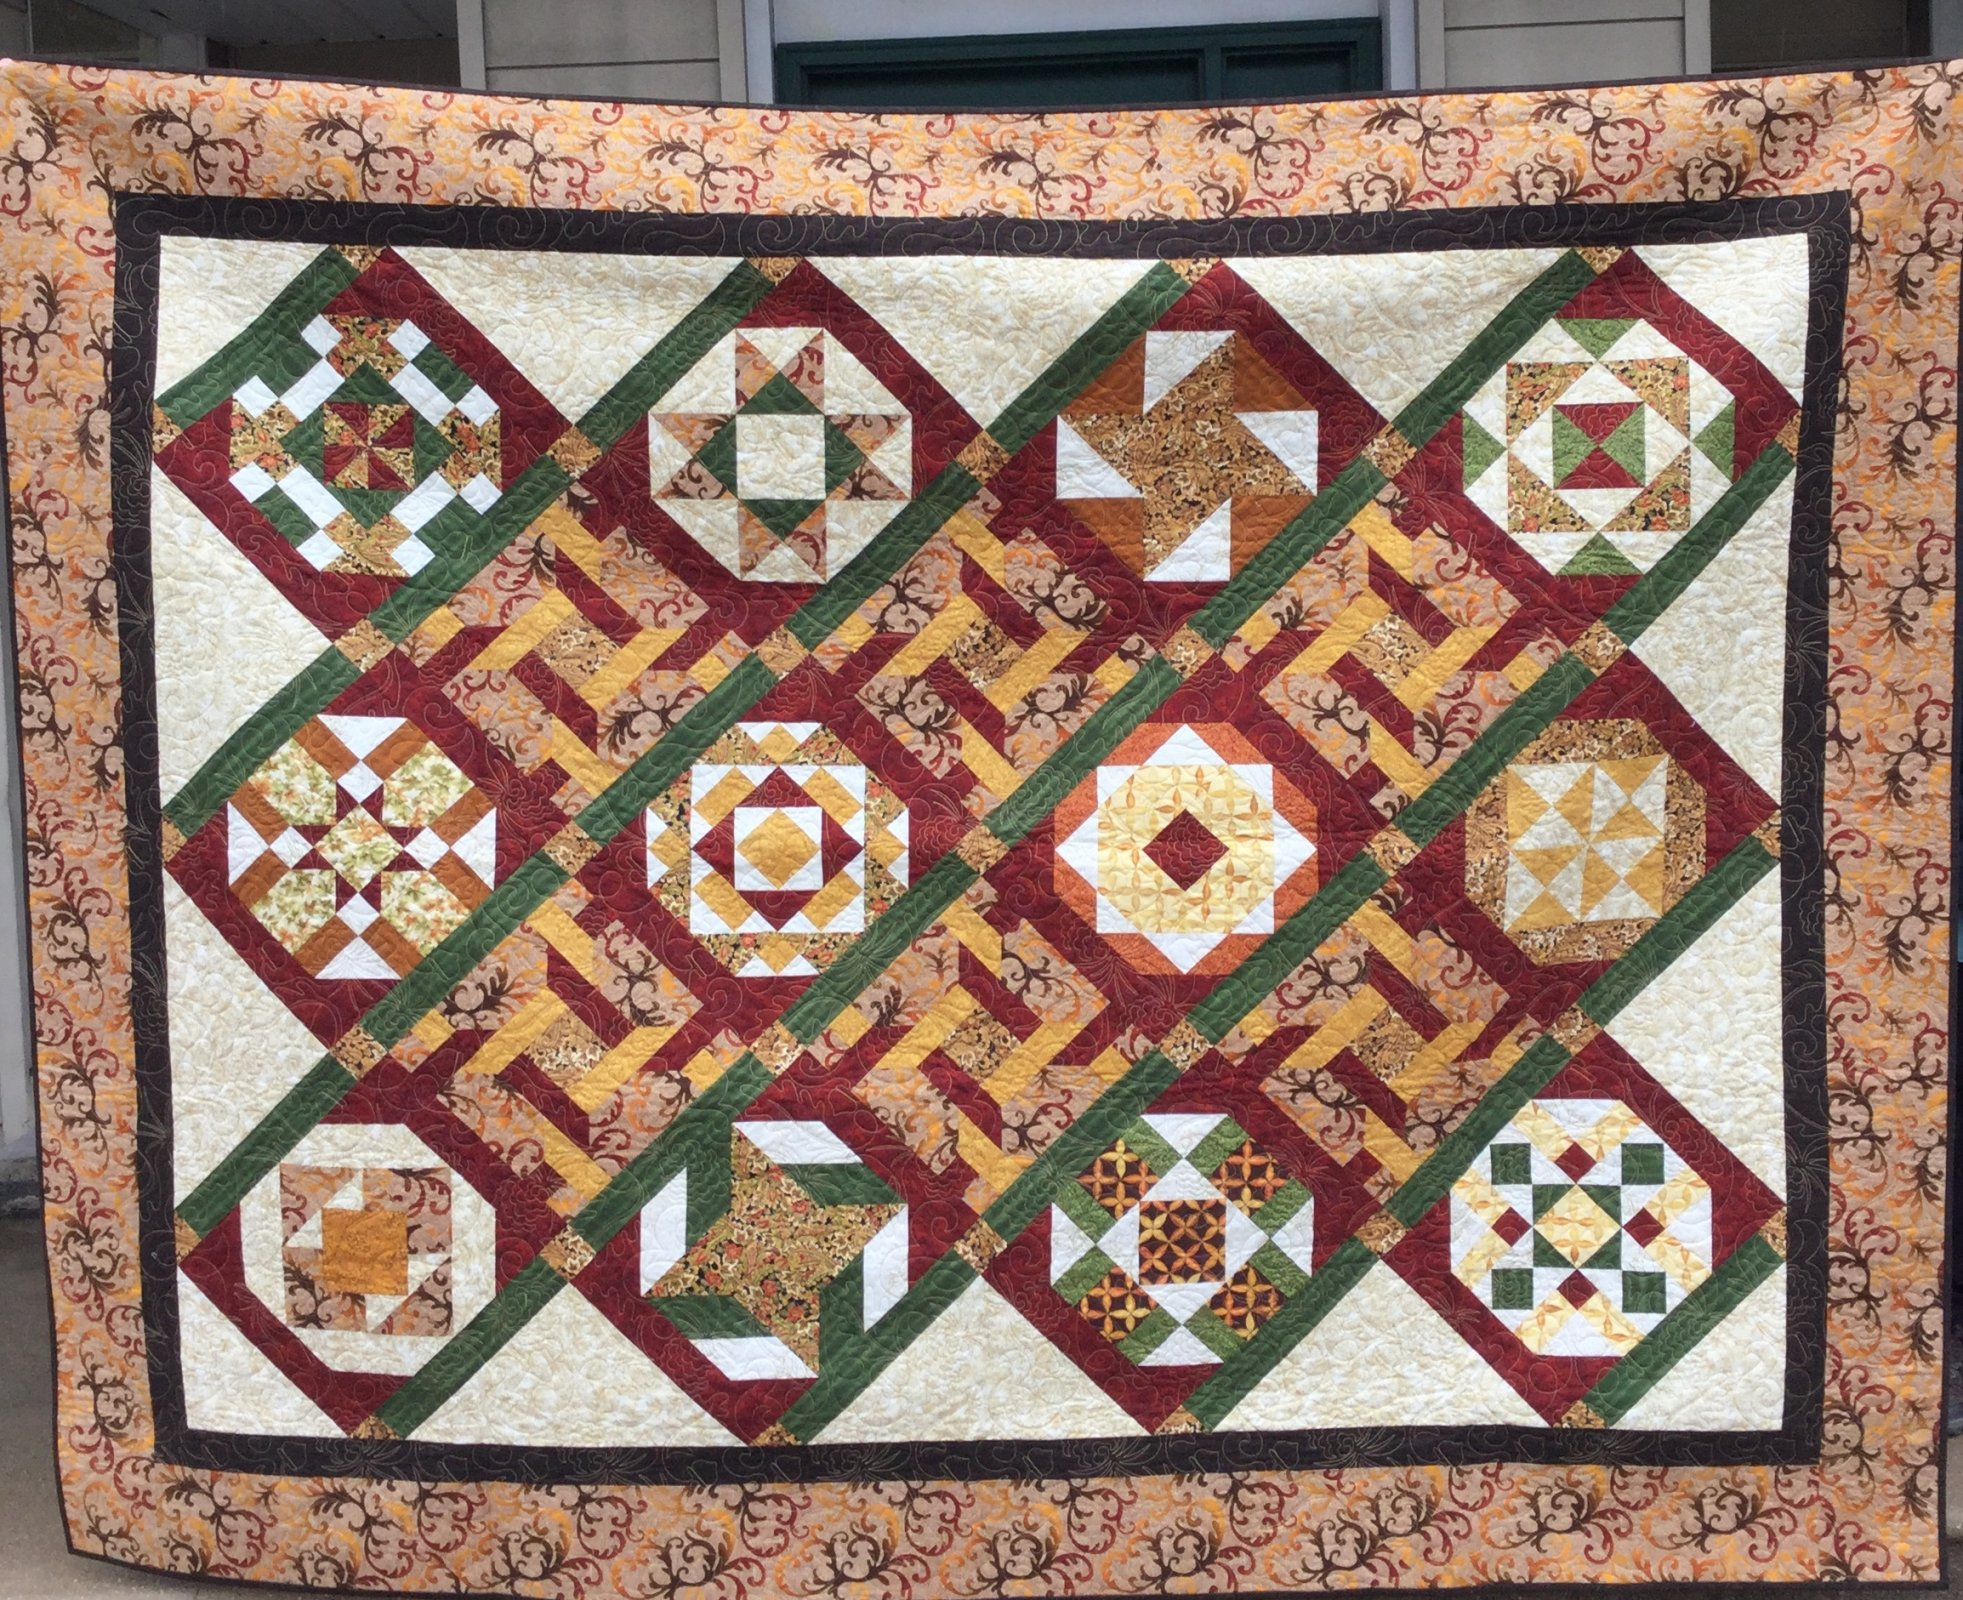 Shades of the Season Quilt (92 x 75)